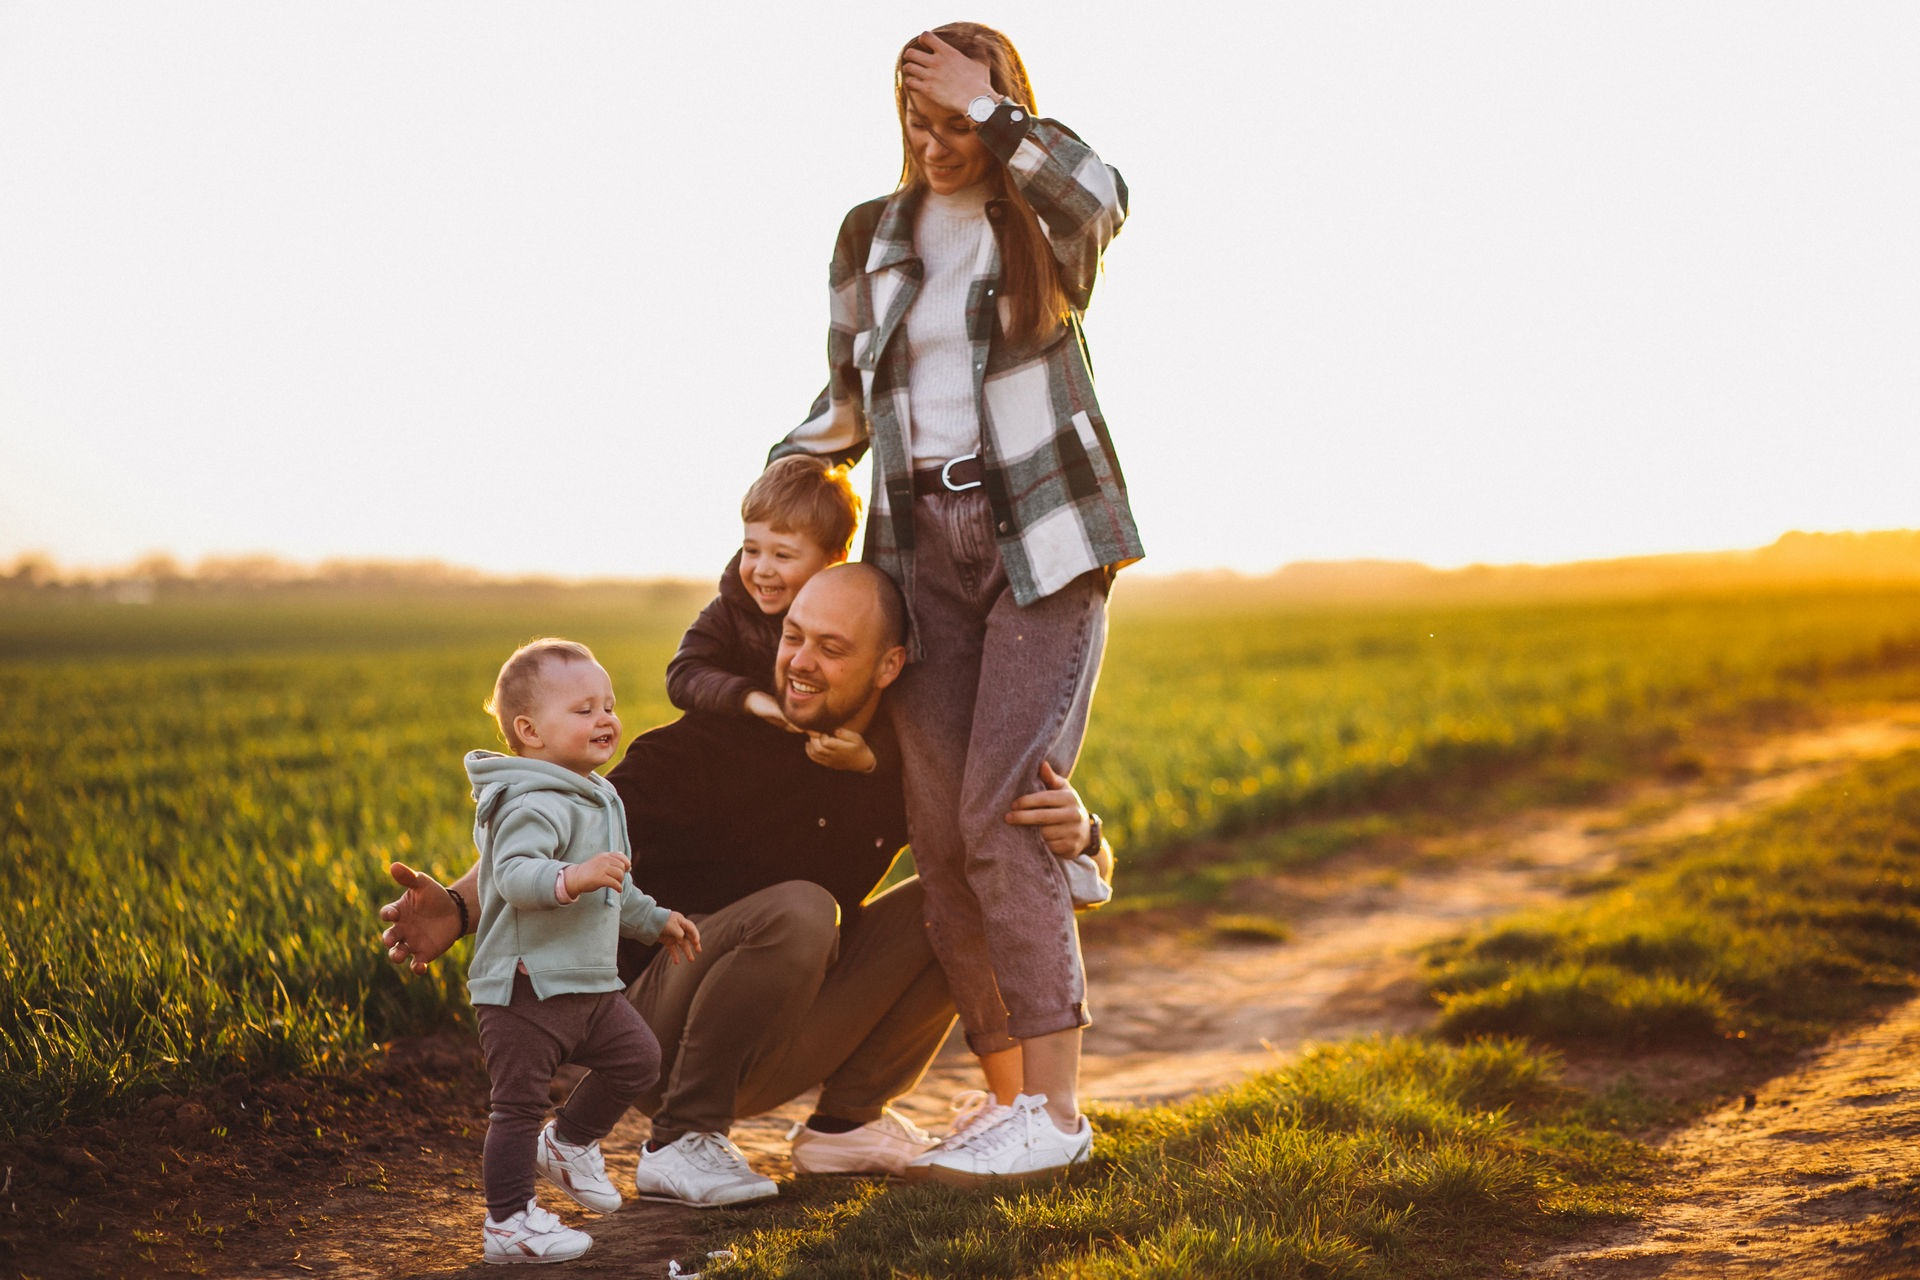 Happy family having fun in the field on the sunset